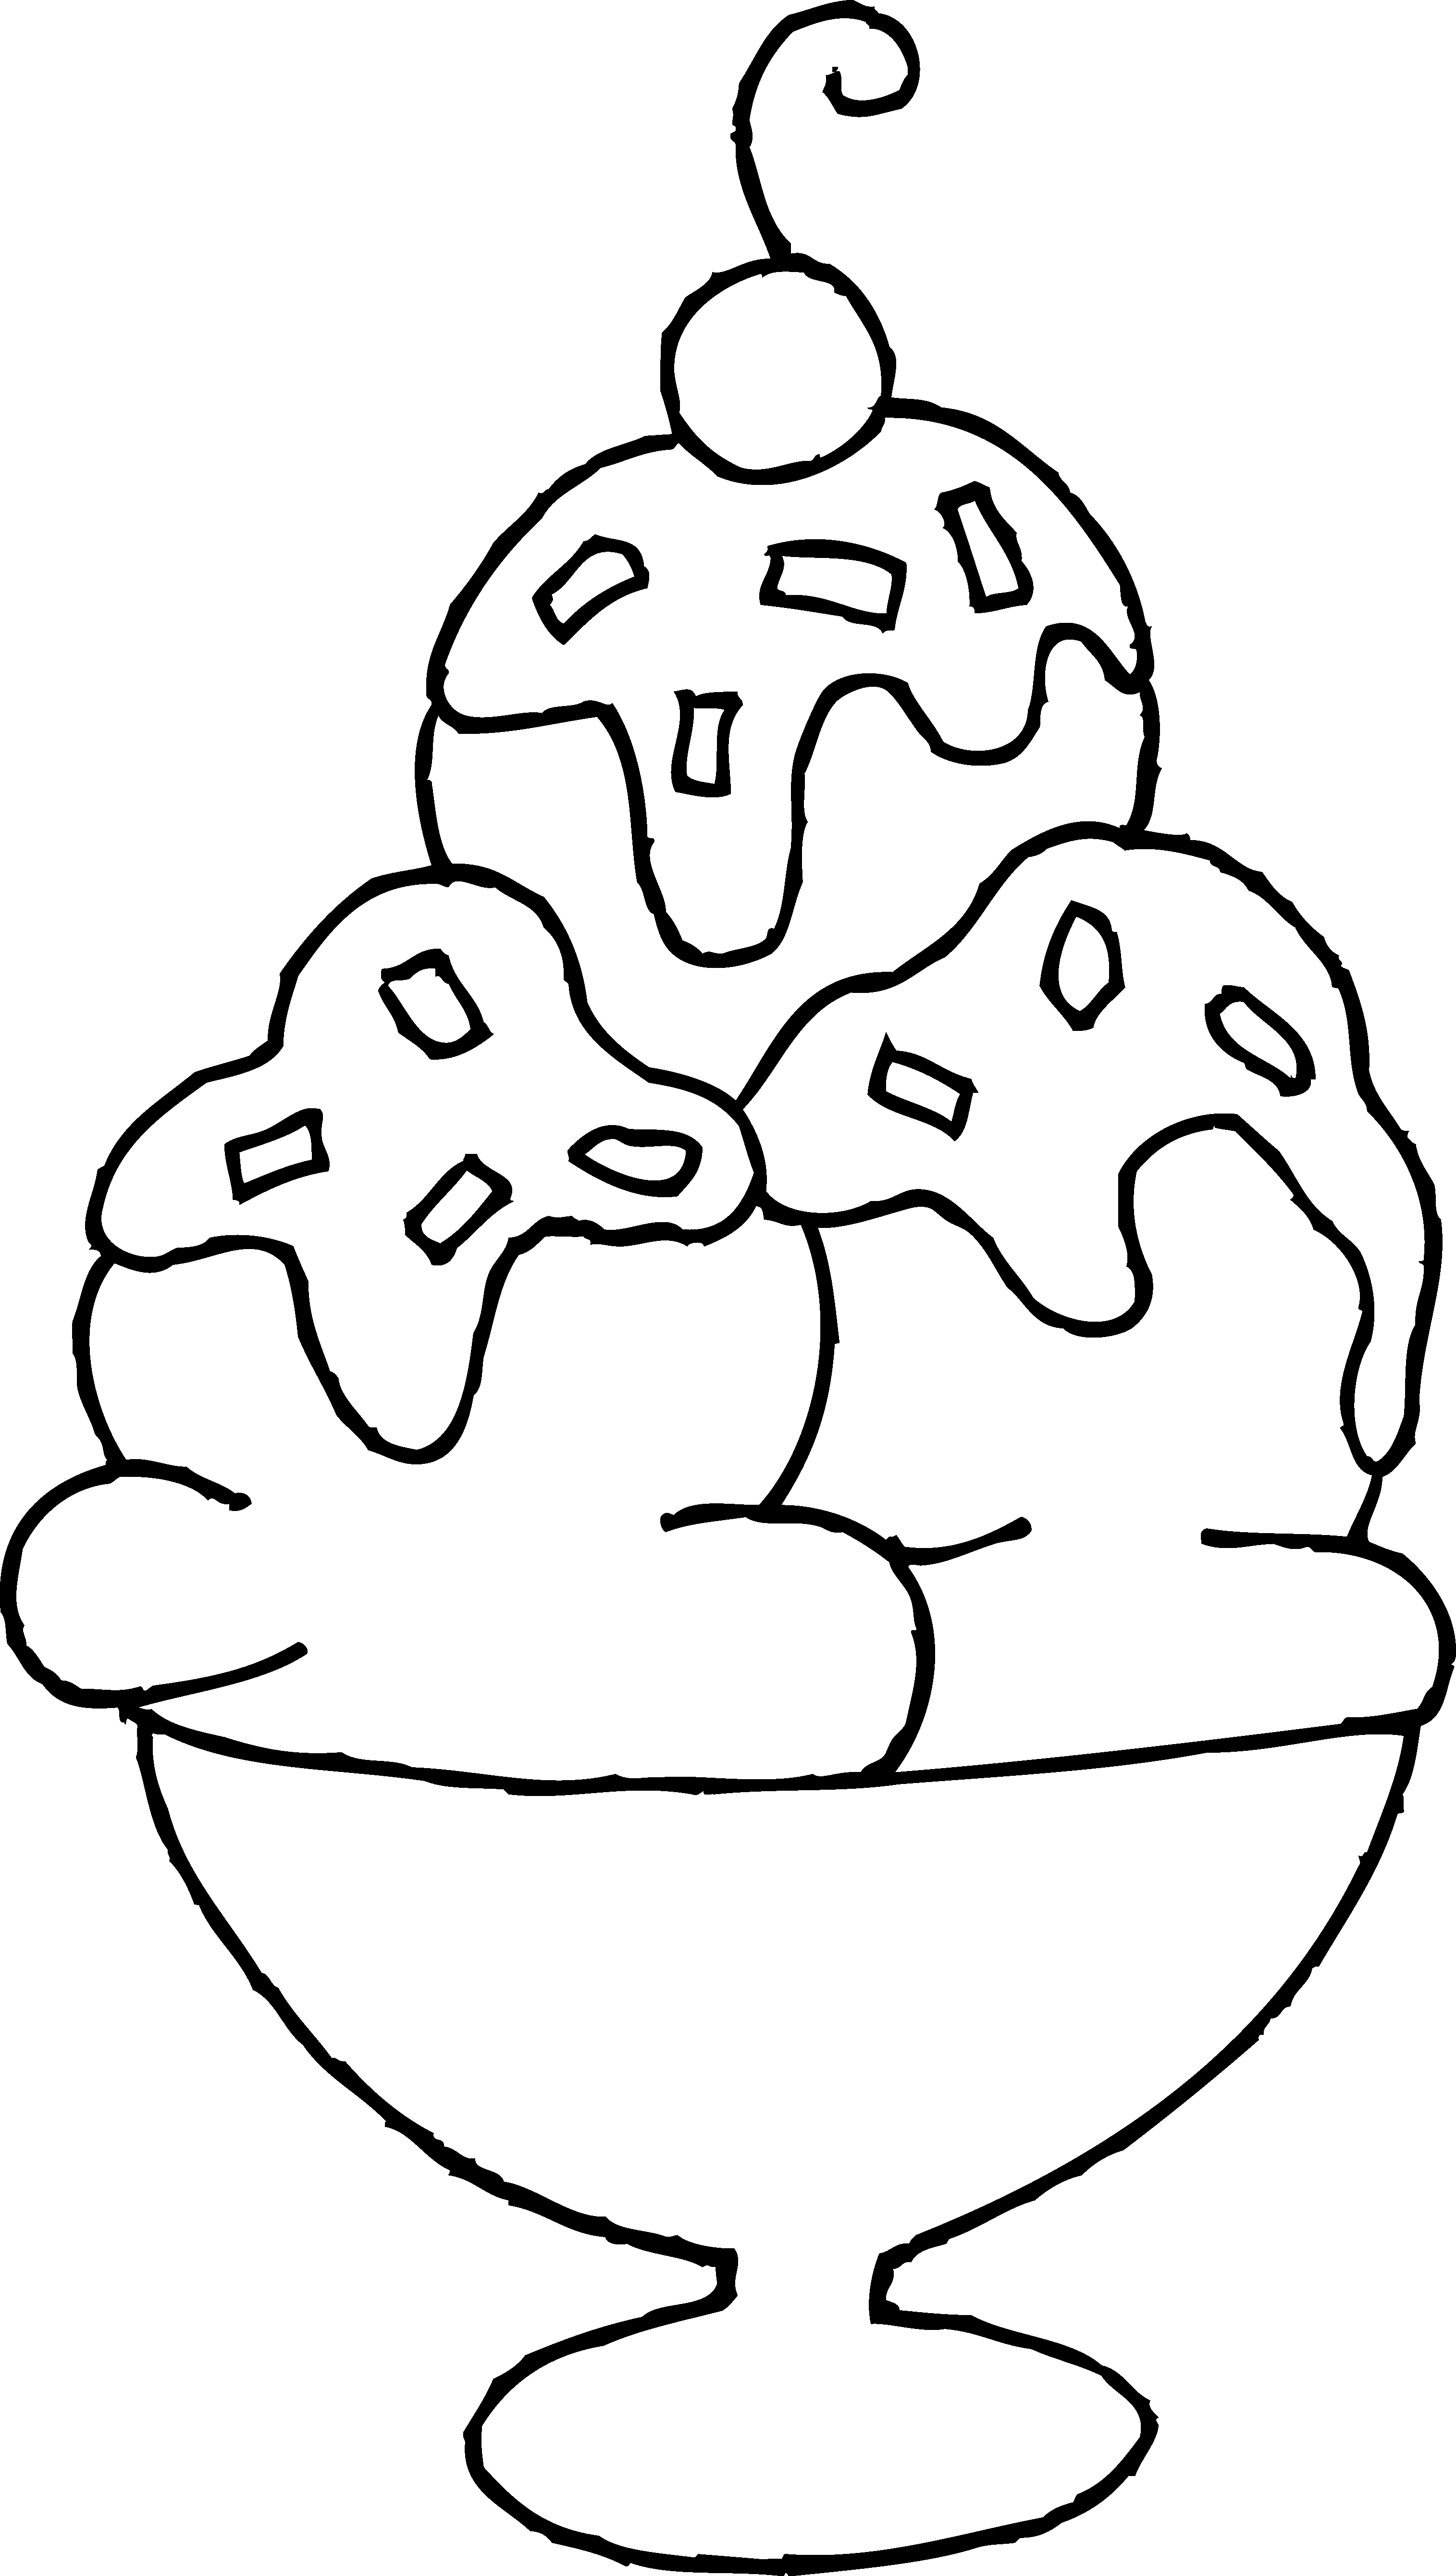 coloring sheets ice cream ice cream coloring pages woo jr kids activities ice coloring sheets cream